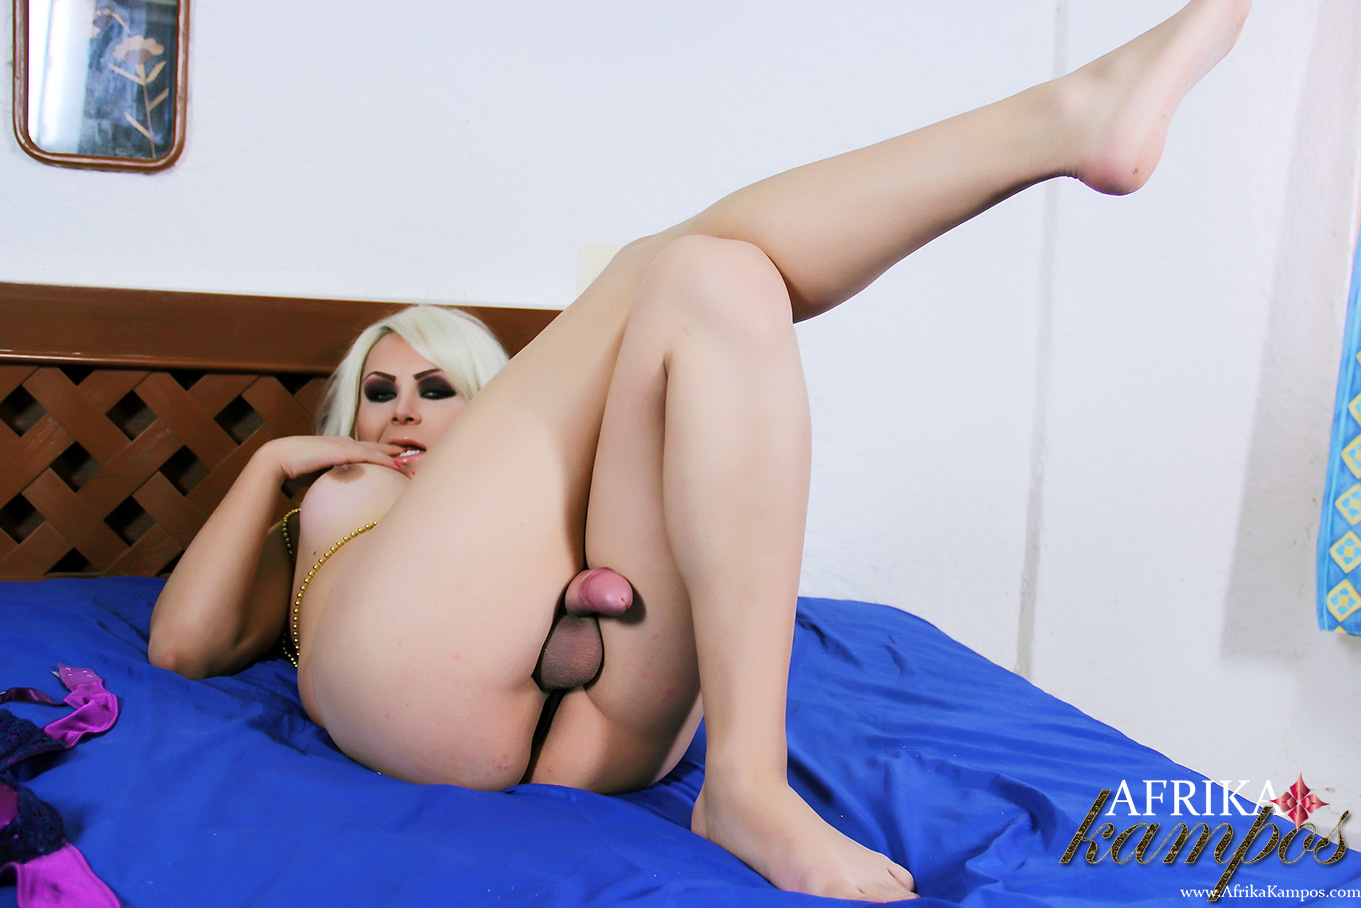 Caucasian Ts Afrika Kampos Doggie Style Showing Off Her